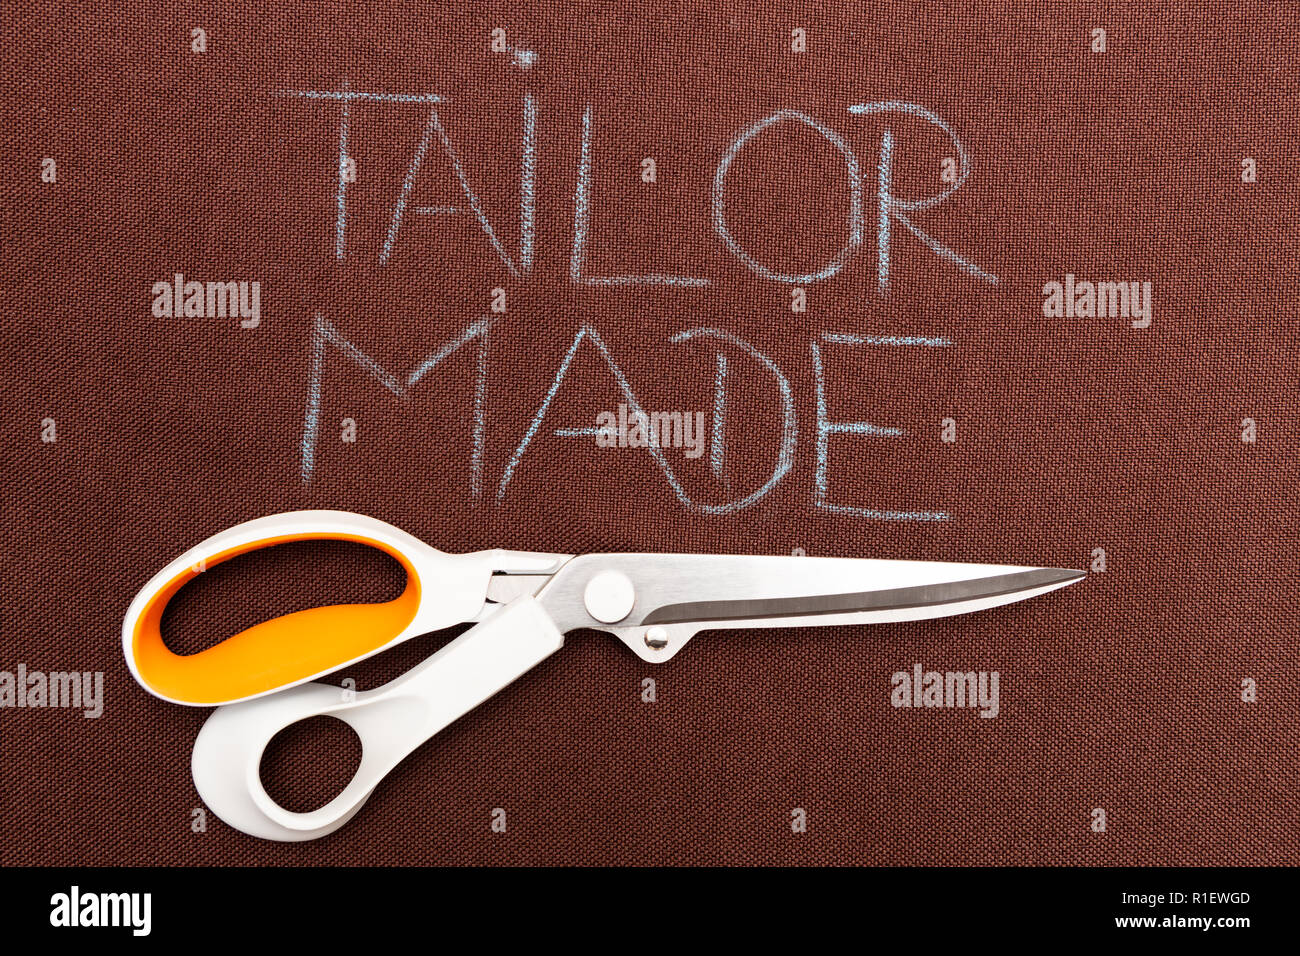 Scissors underlining tailor made text on brown fabric as background - Stock Image